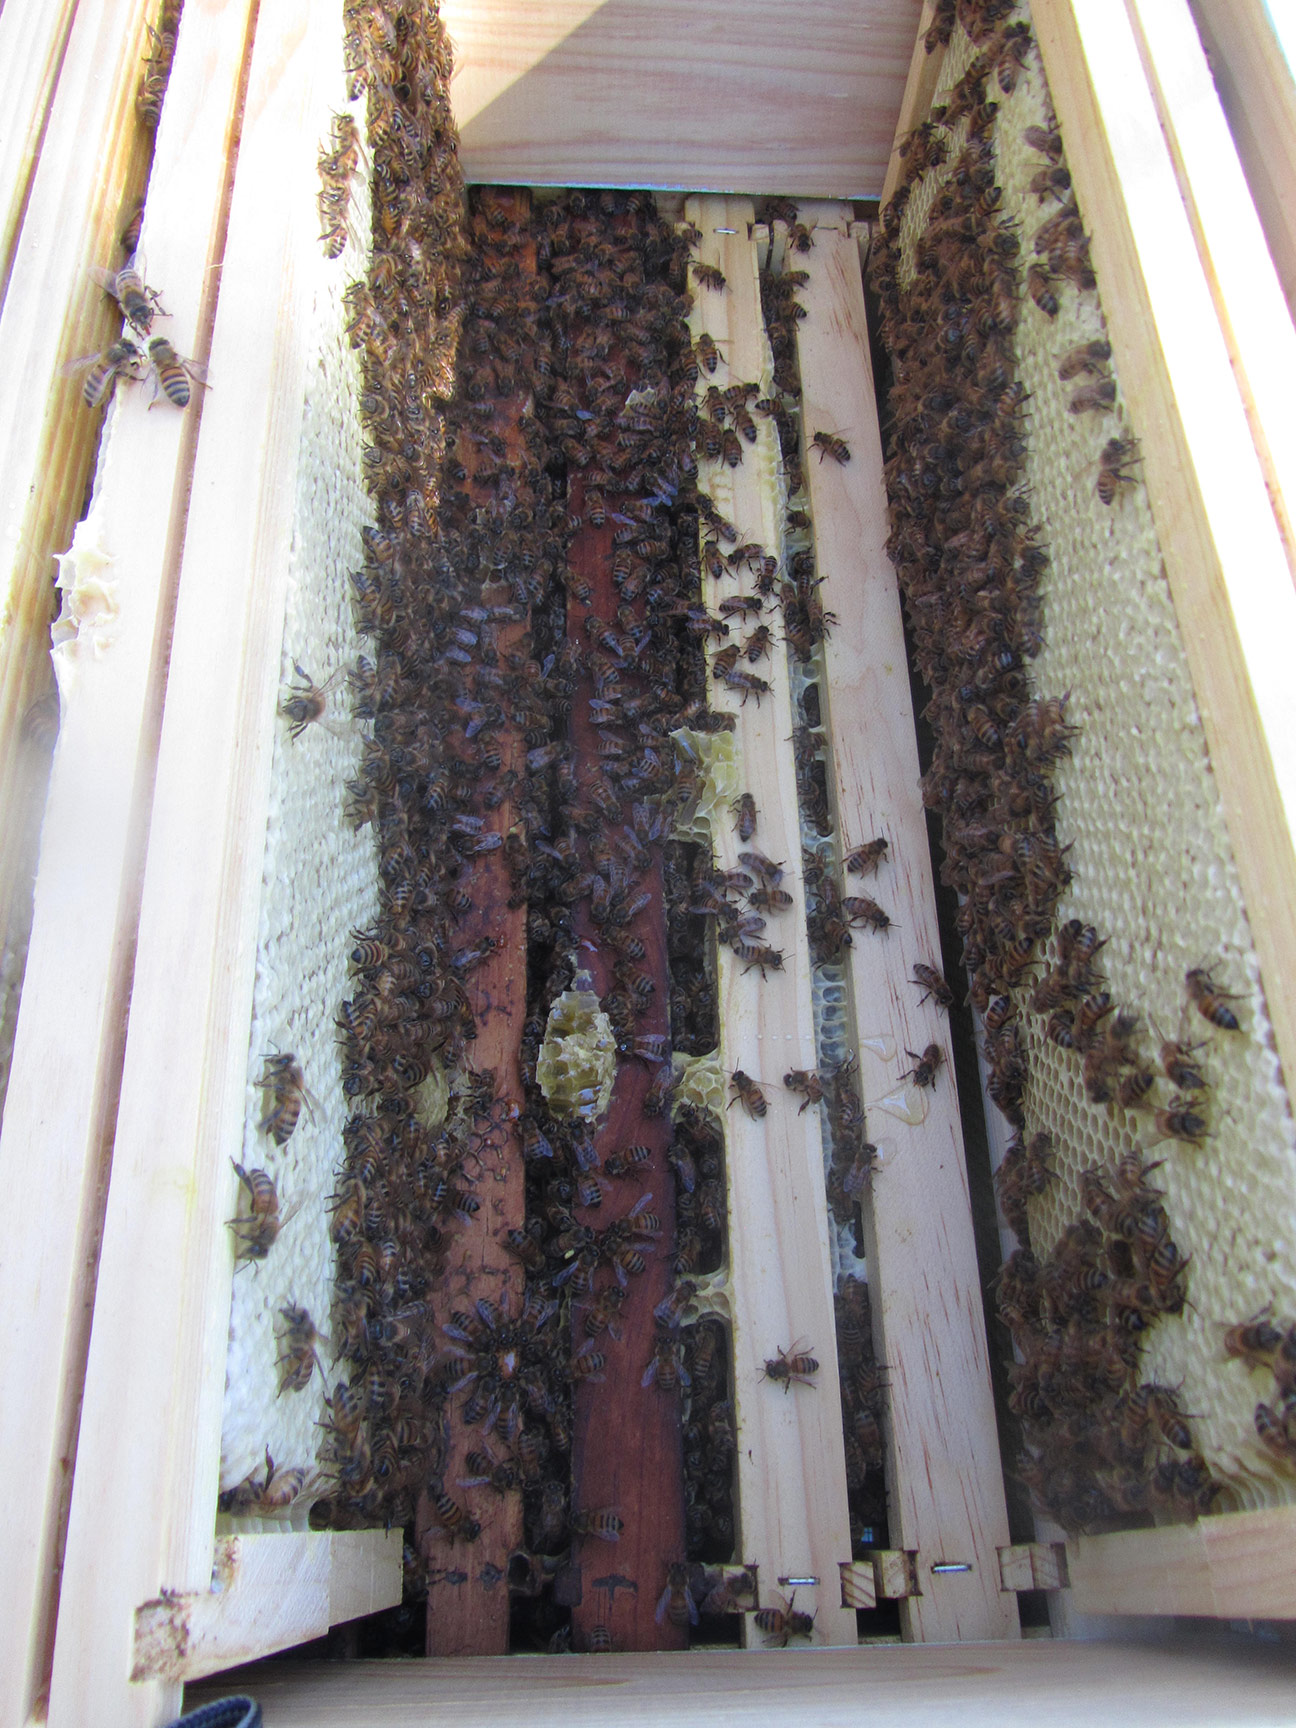 Looking down into the hive